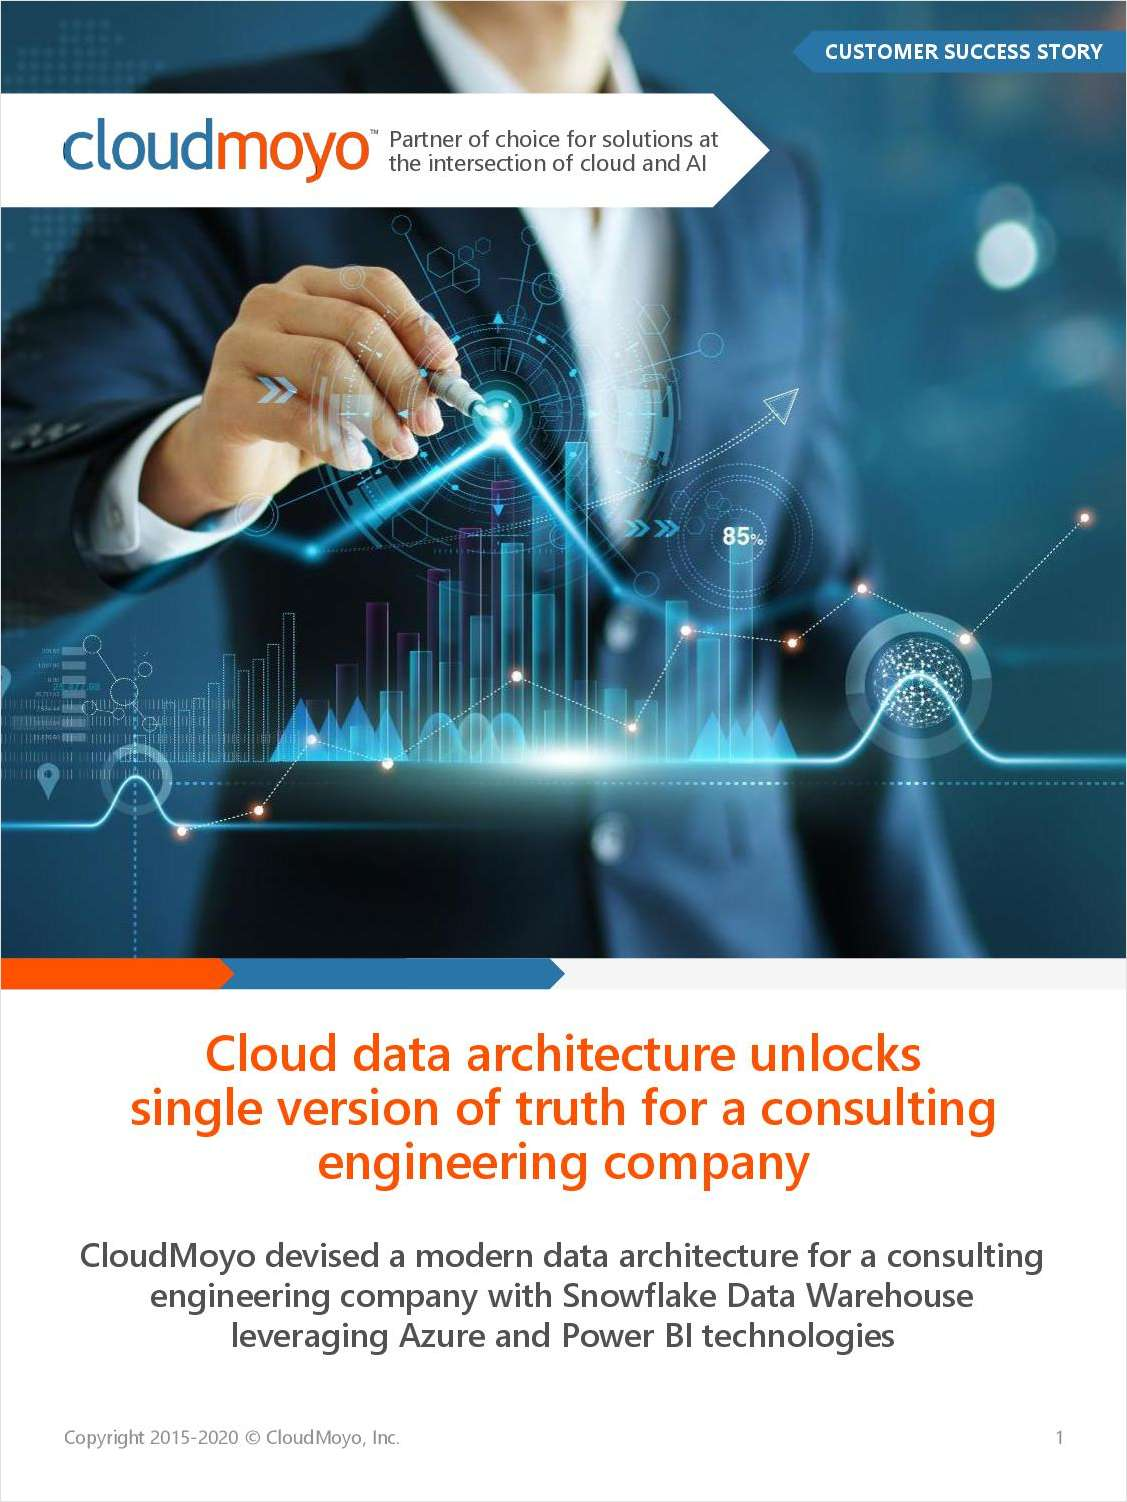 Cloud data architecture unlocks a single version of truth for a consulting engineering company